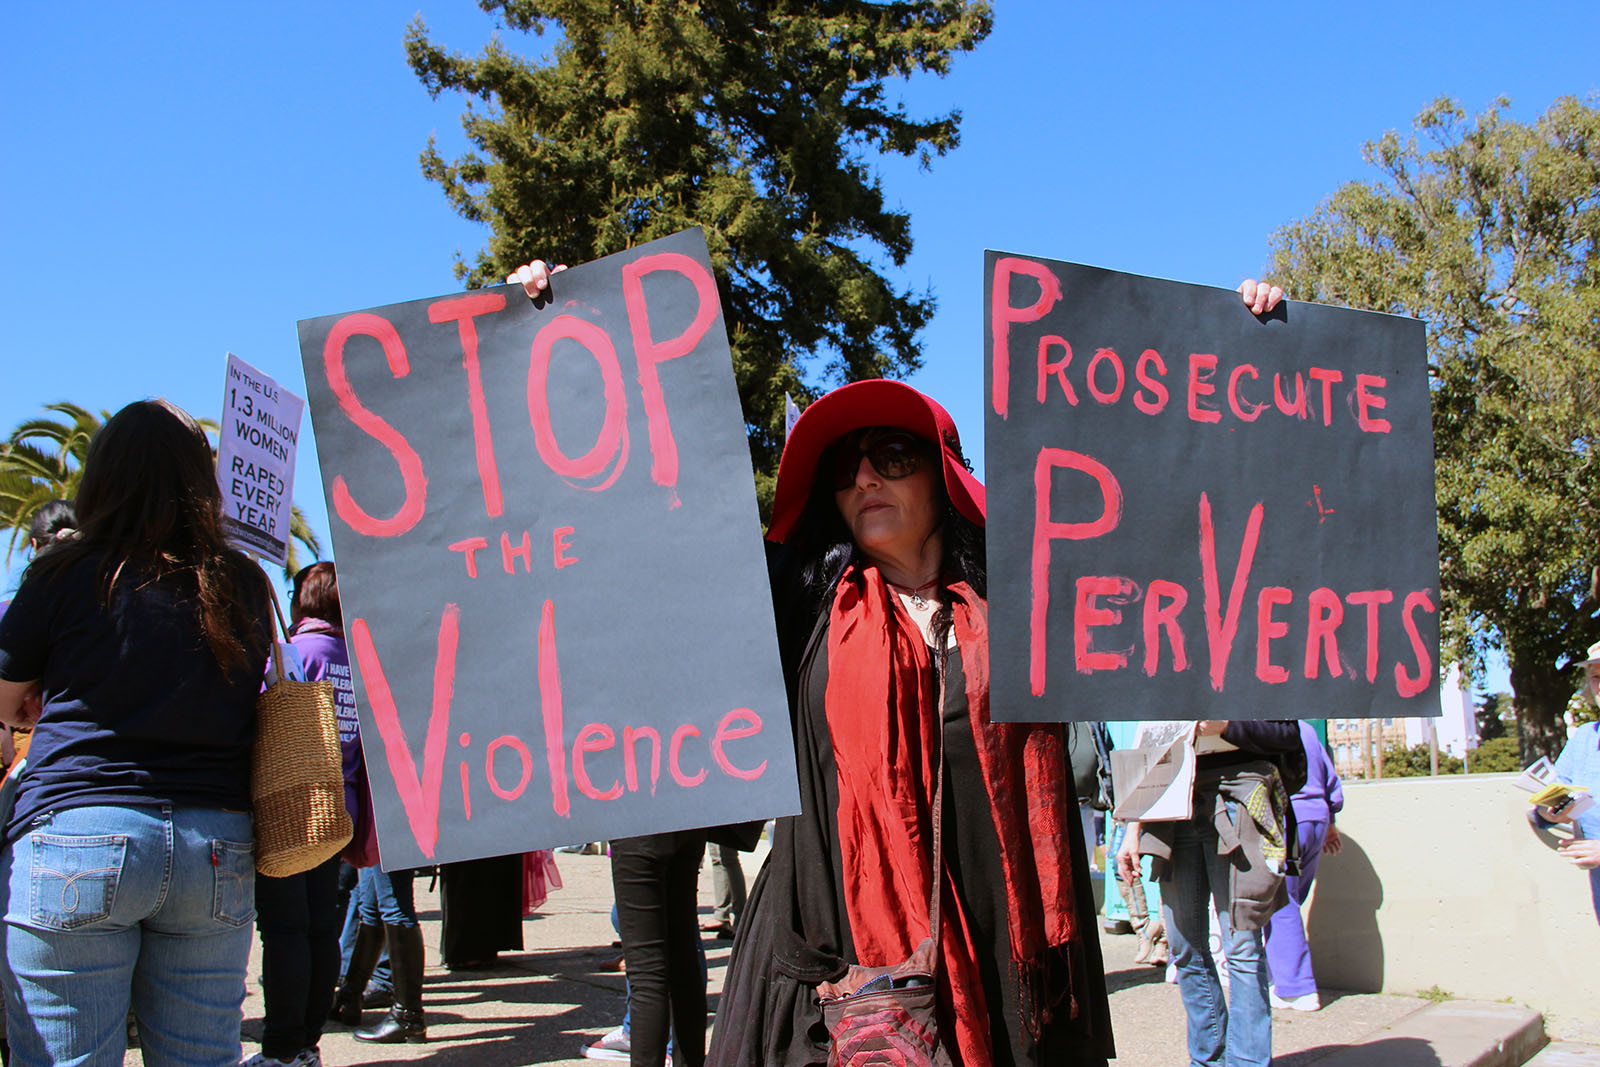 Rally for Women's Rights in the Mission